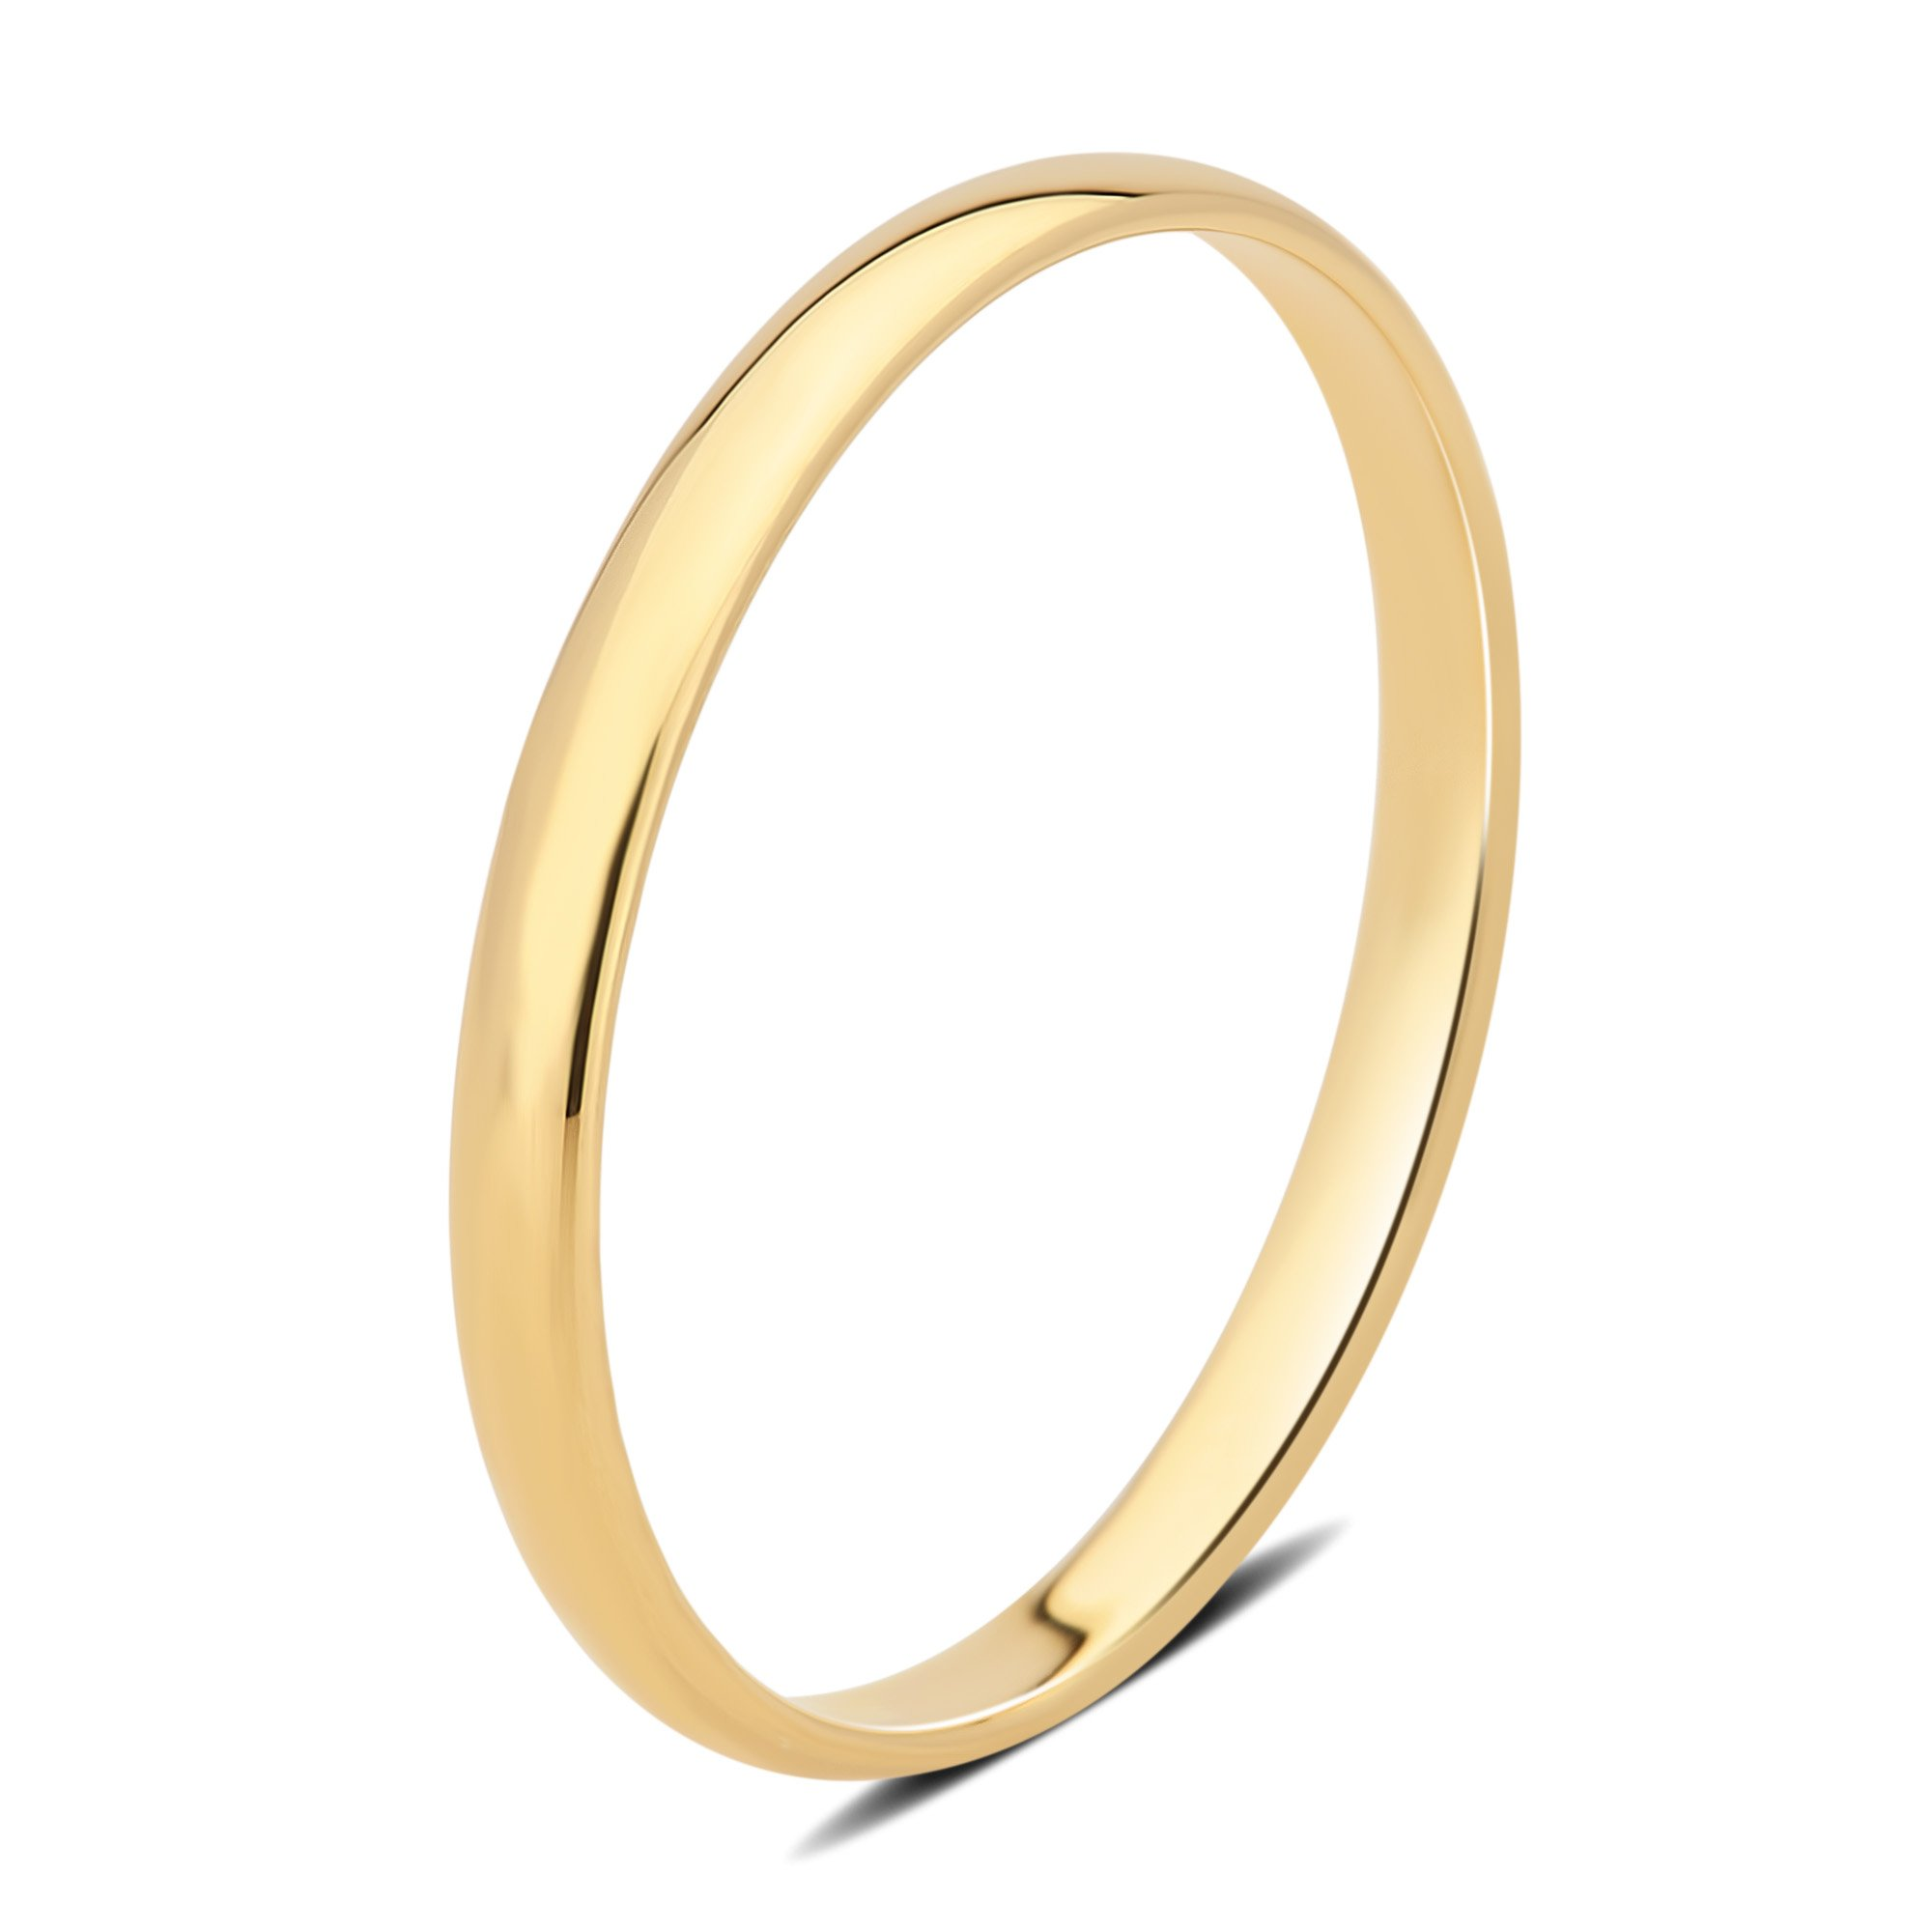 DiamondMuse 2 mm Plain Wedding Band in 10K Yellow Gold (9)